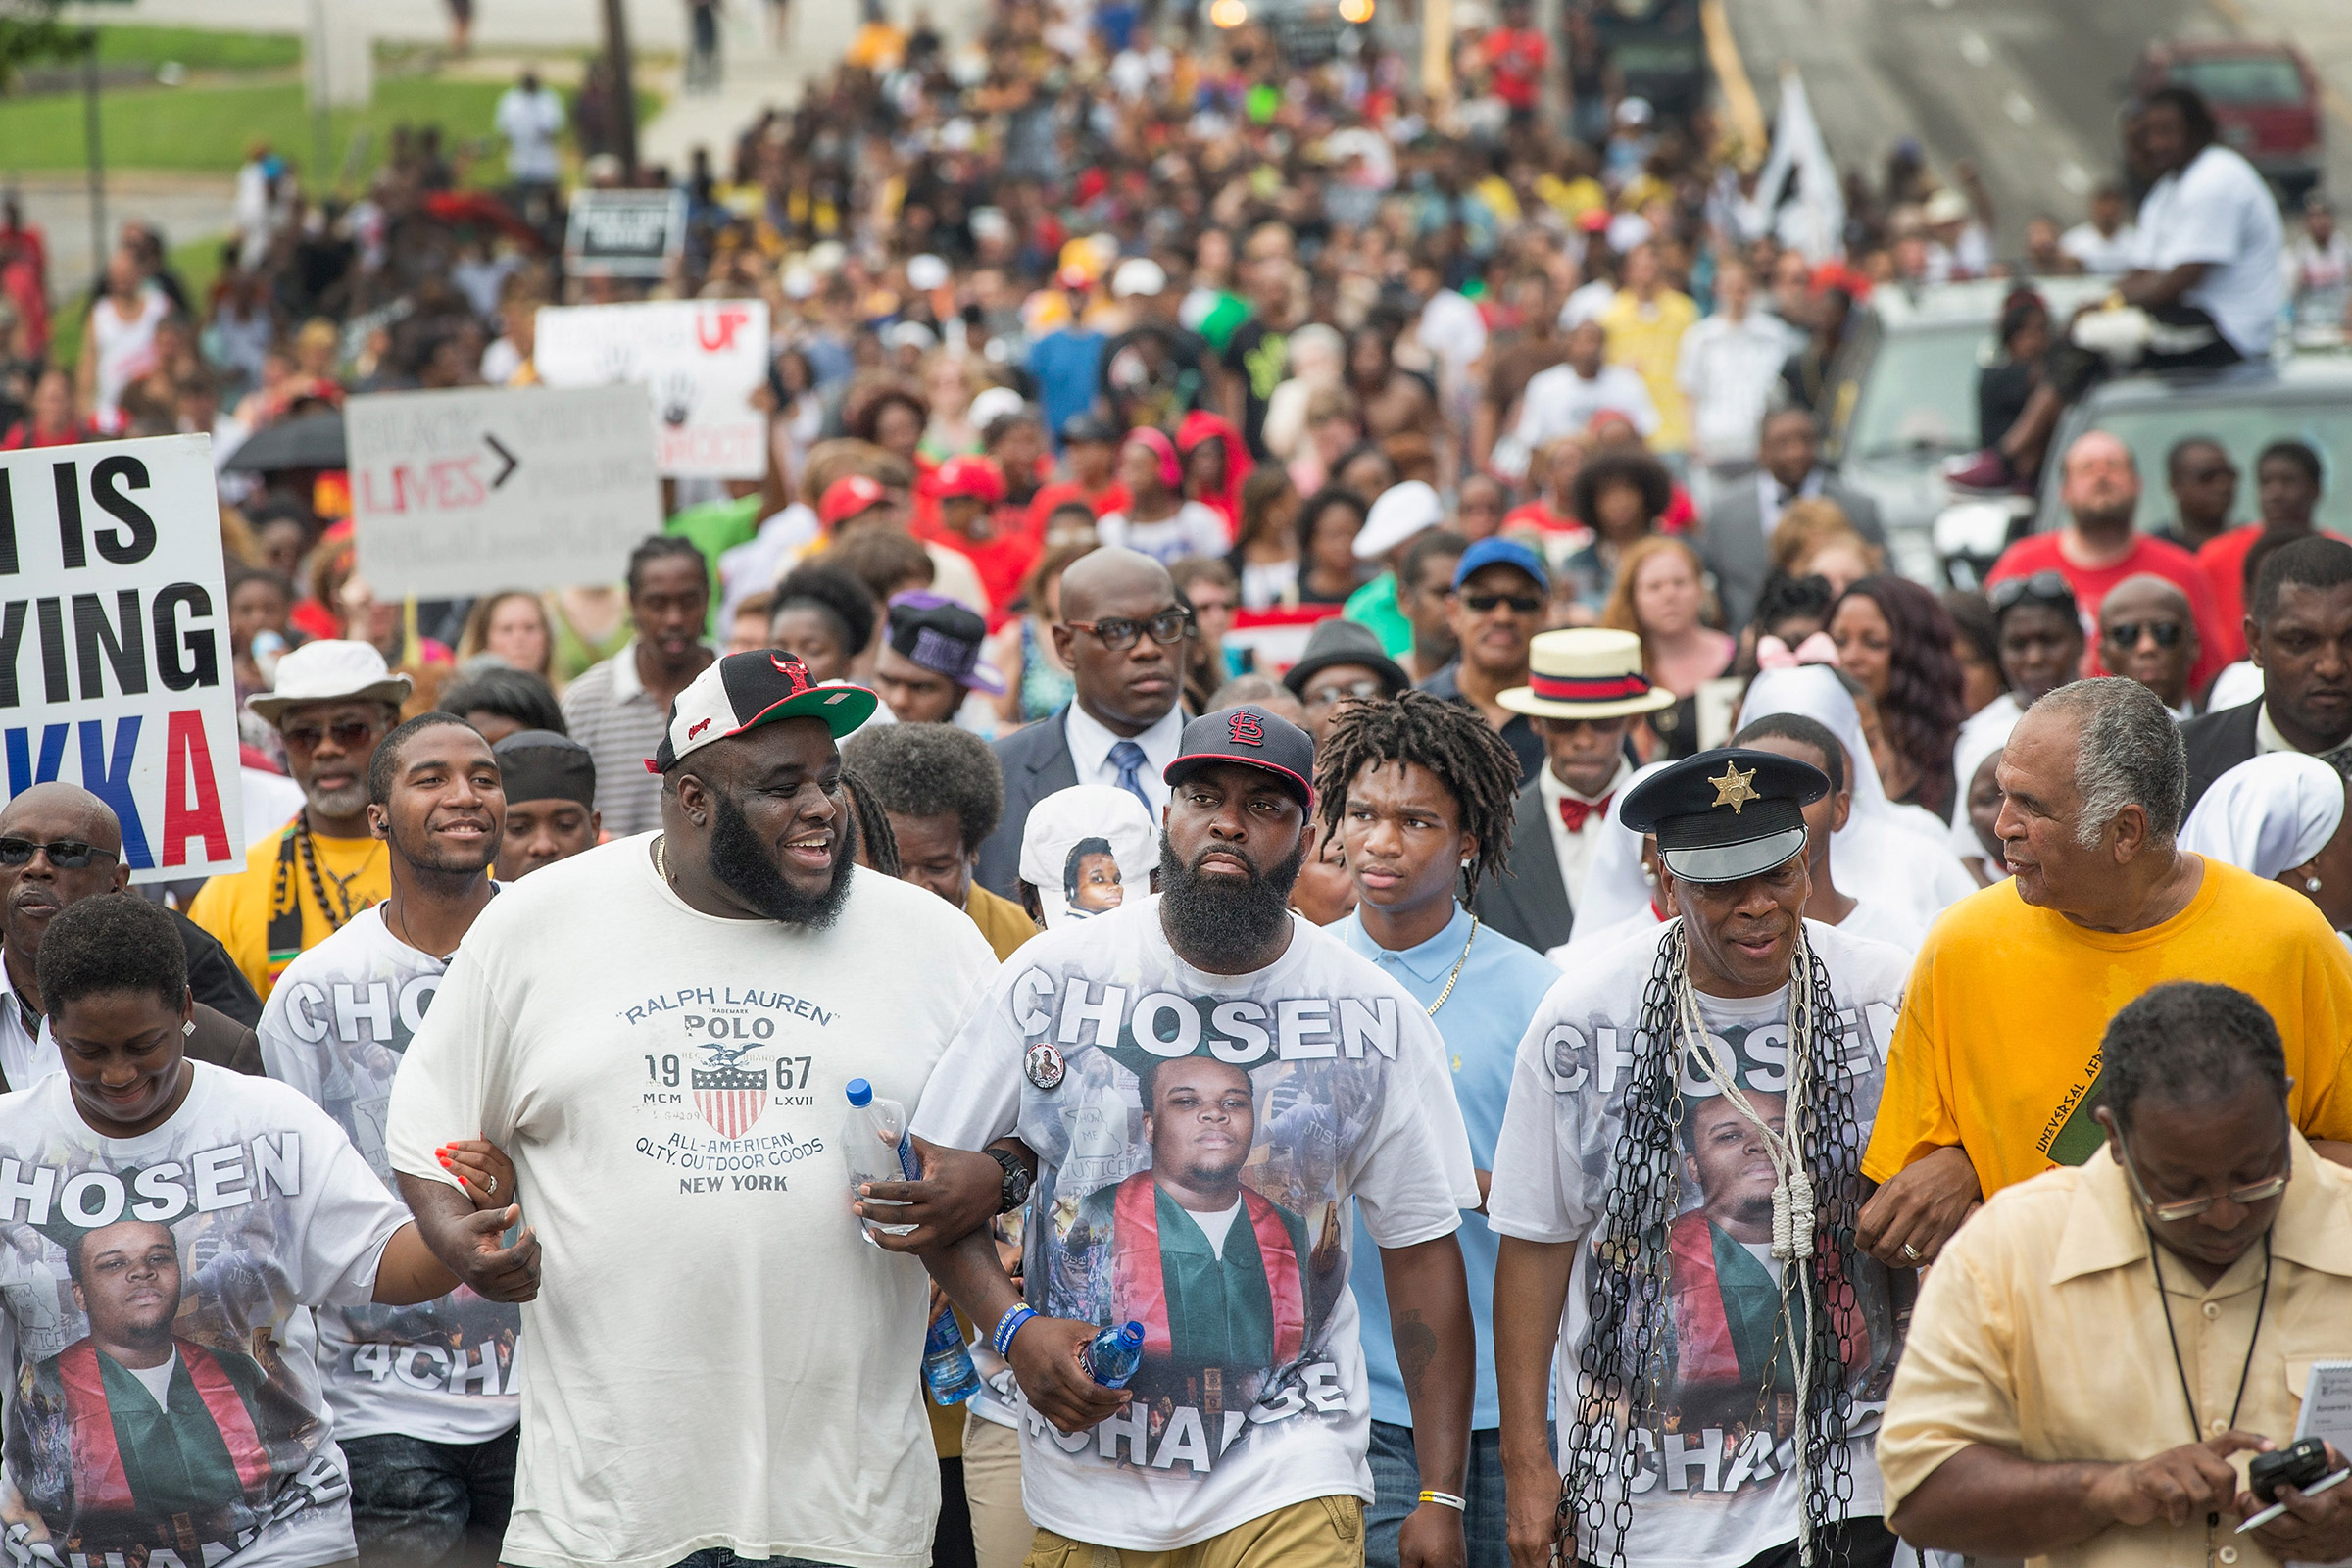 Michael Brown Sr. (center) leads a march from the location where his son Michael Brown Jr. was shot and killed following a memorial service marking the anniversary of his death in Ferguson, Mo. on Aug. 9, 2015.